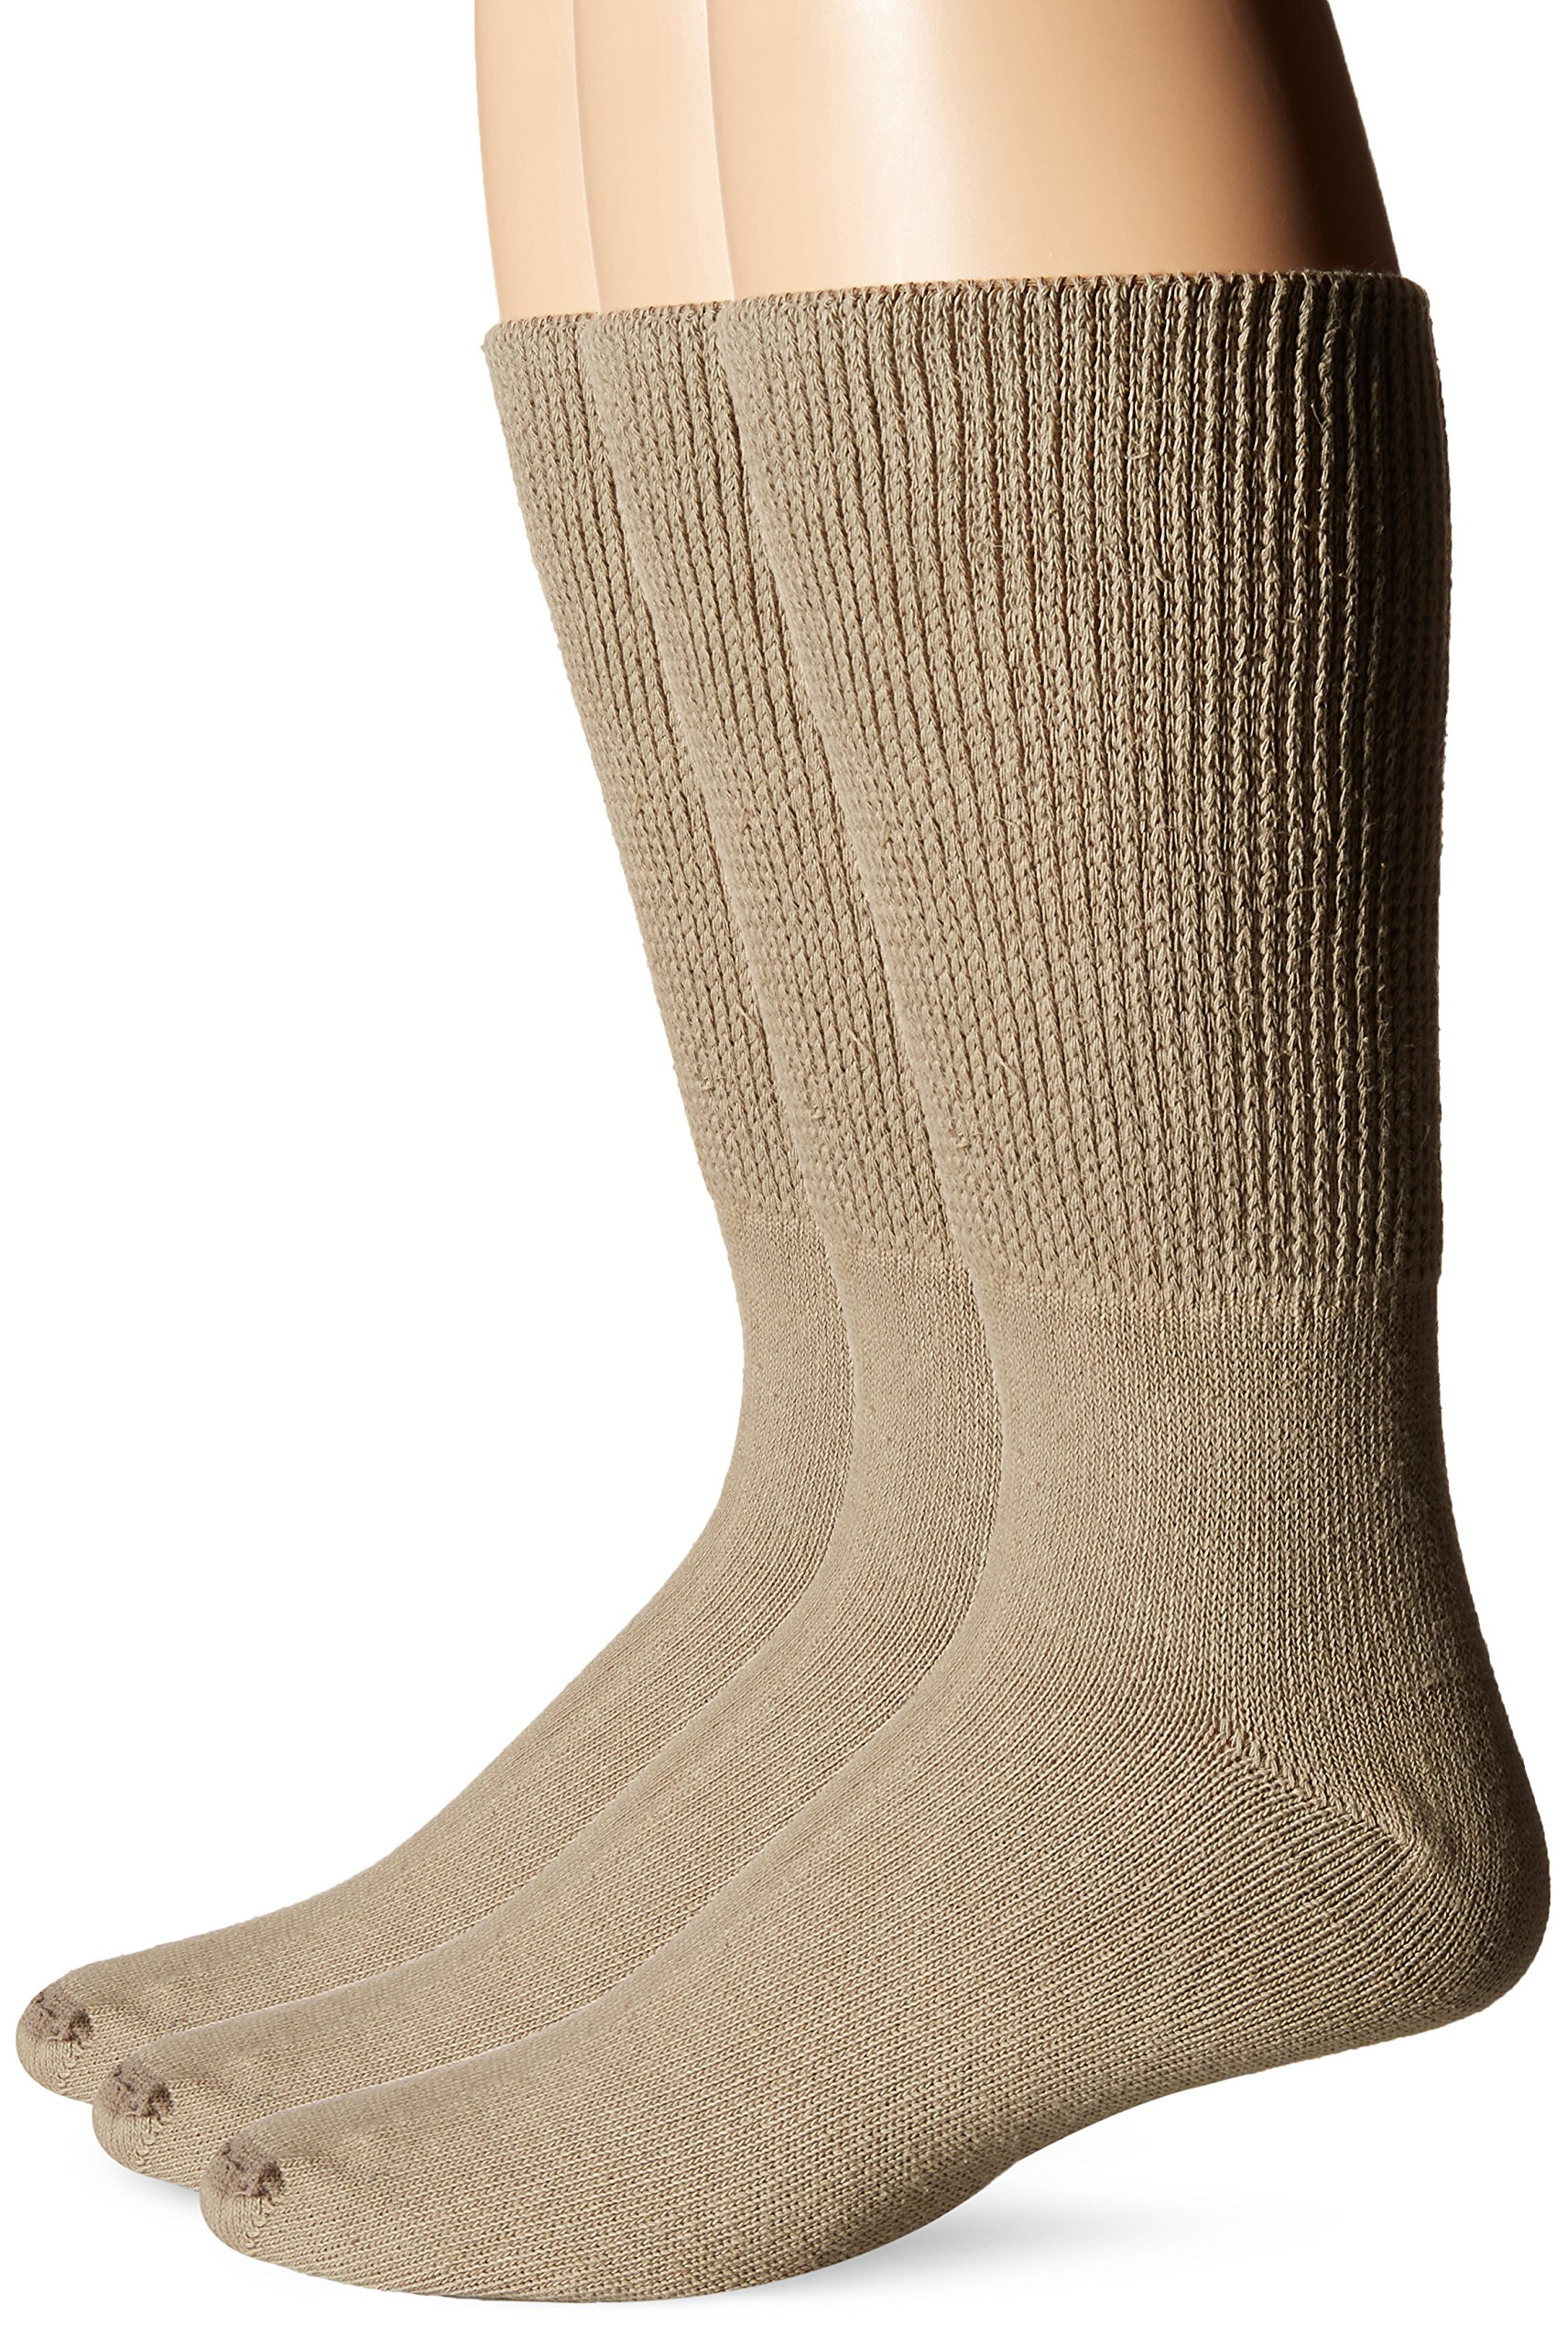 Extra-Wide Medical Crew Socks for Men (11-16(up to 6E wide)-Tan-3pk